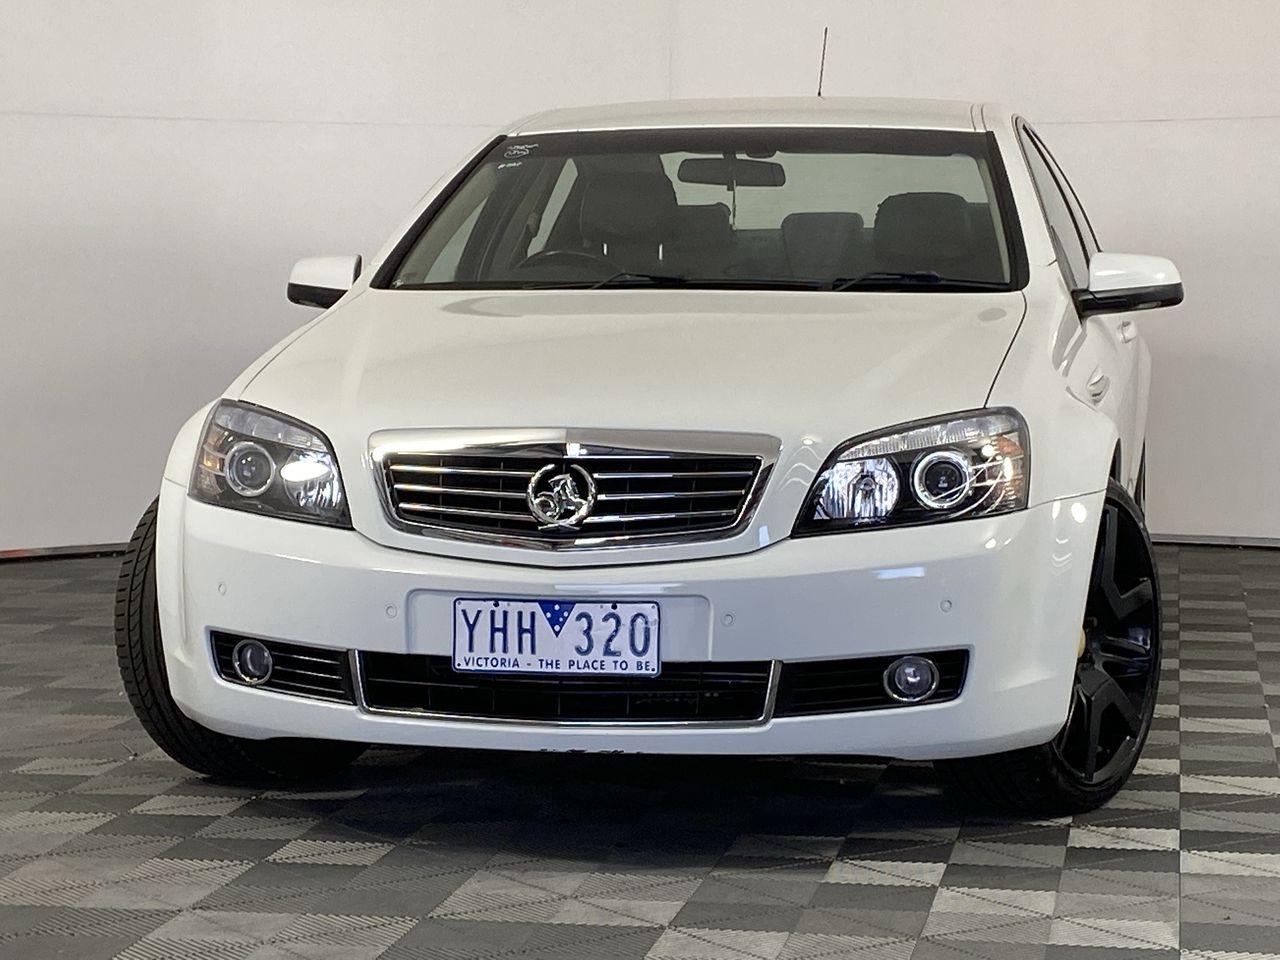 2008 Holden Statesman V6 WM Automatic Sedan